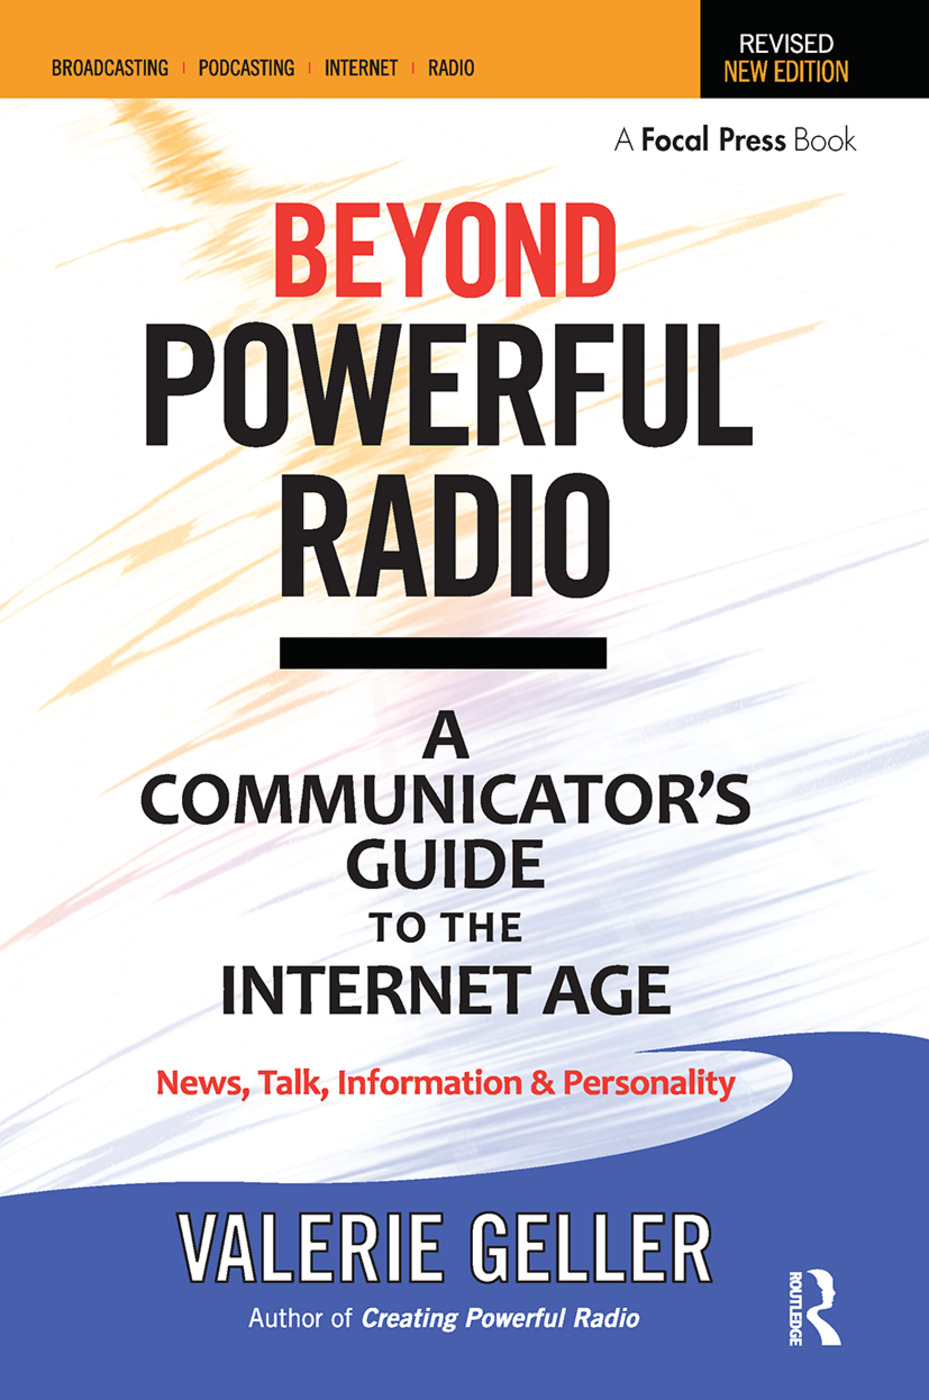 Beyond Powerful Radio: A Communicator's Guide to the Internet Age—News, Talk, Information & Personality for Broadcasting, Podcasting, Internet, Radio, 2nd Edition (Paperback) book cover